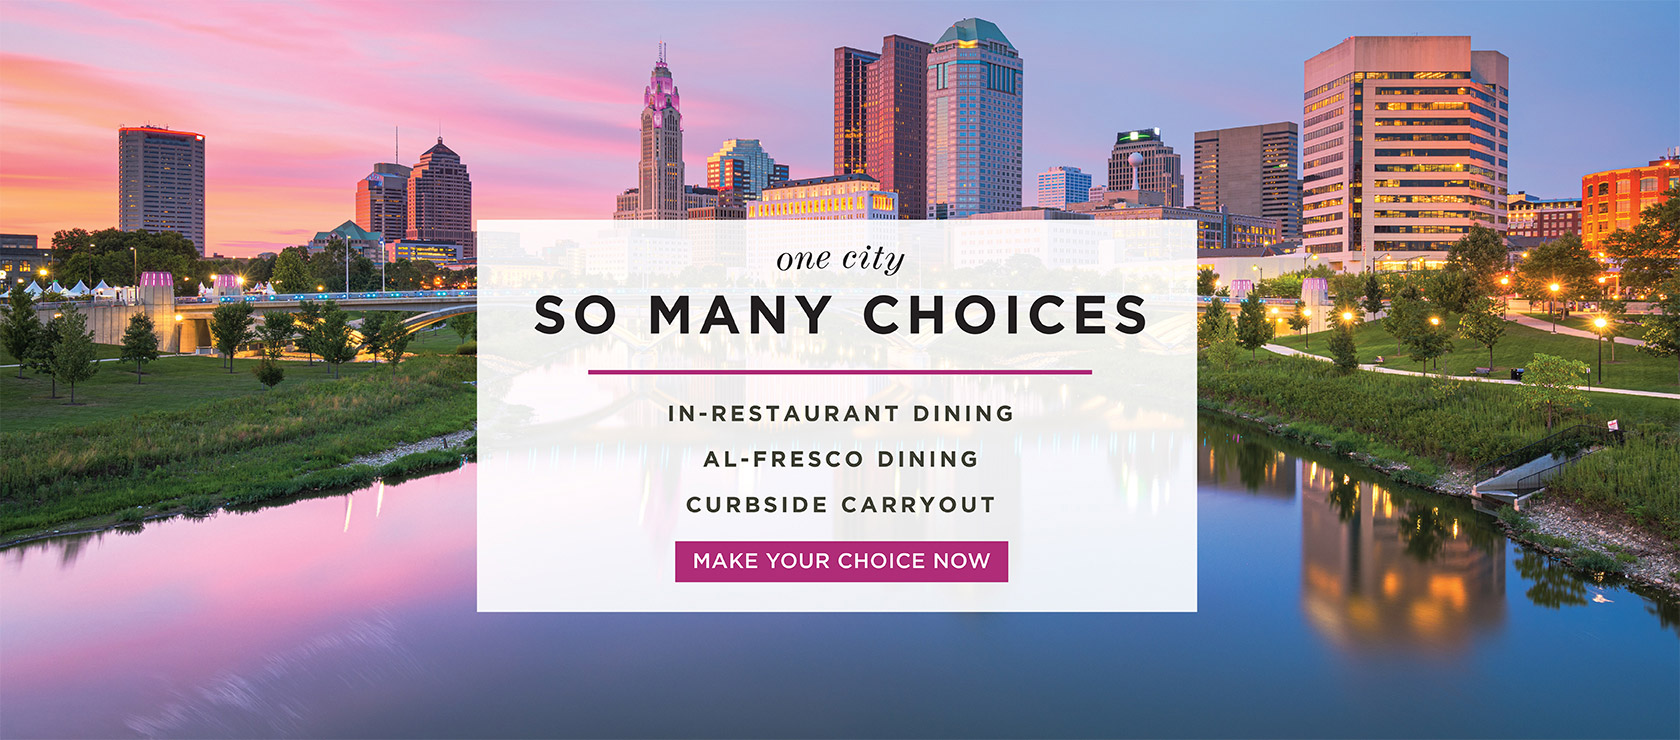 One City. So many choices. In-restaurant, al-fresco dining, curbside carryout. Make your choice now.